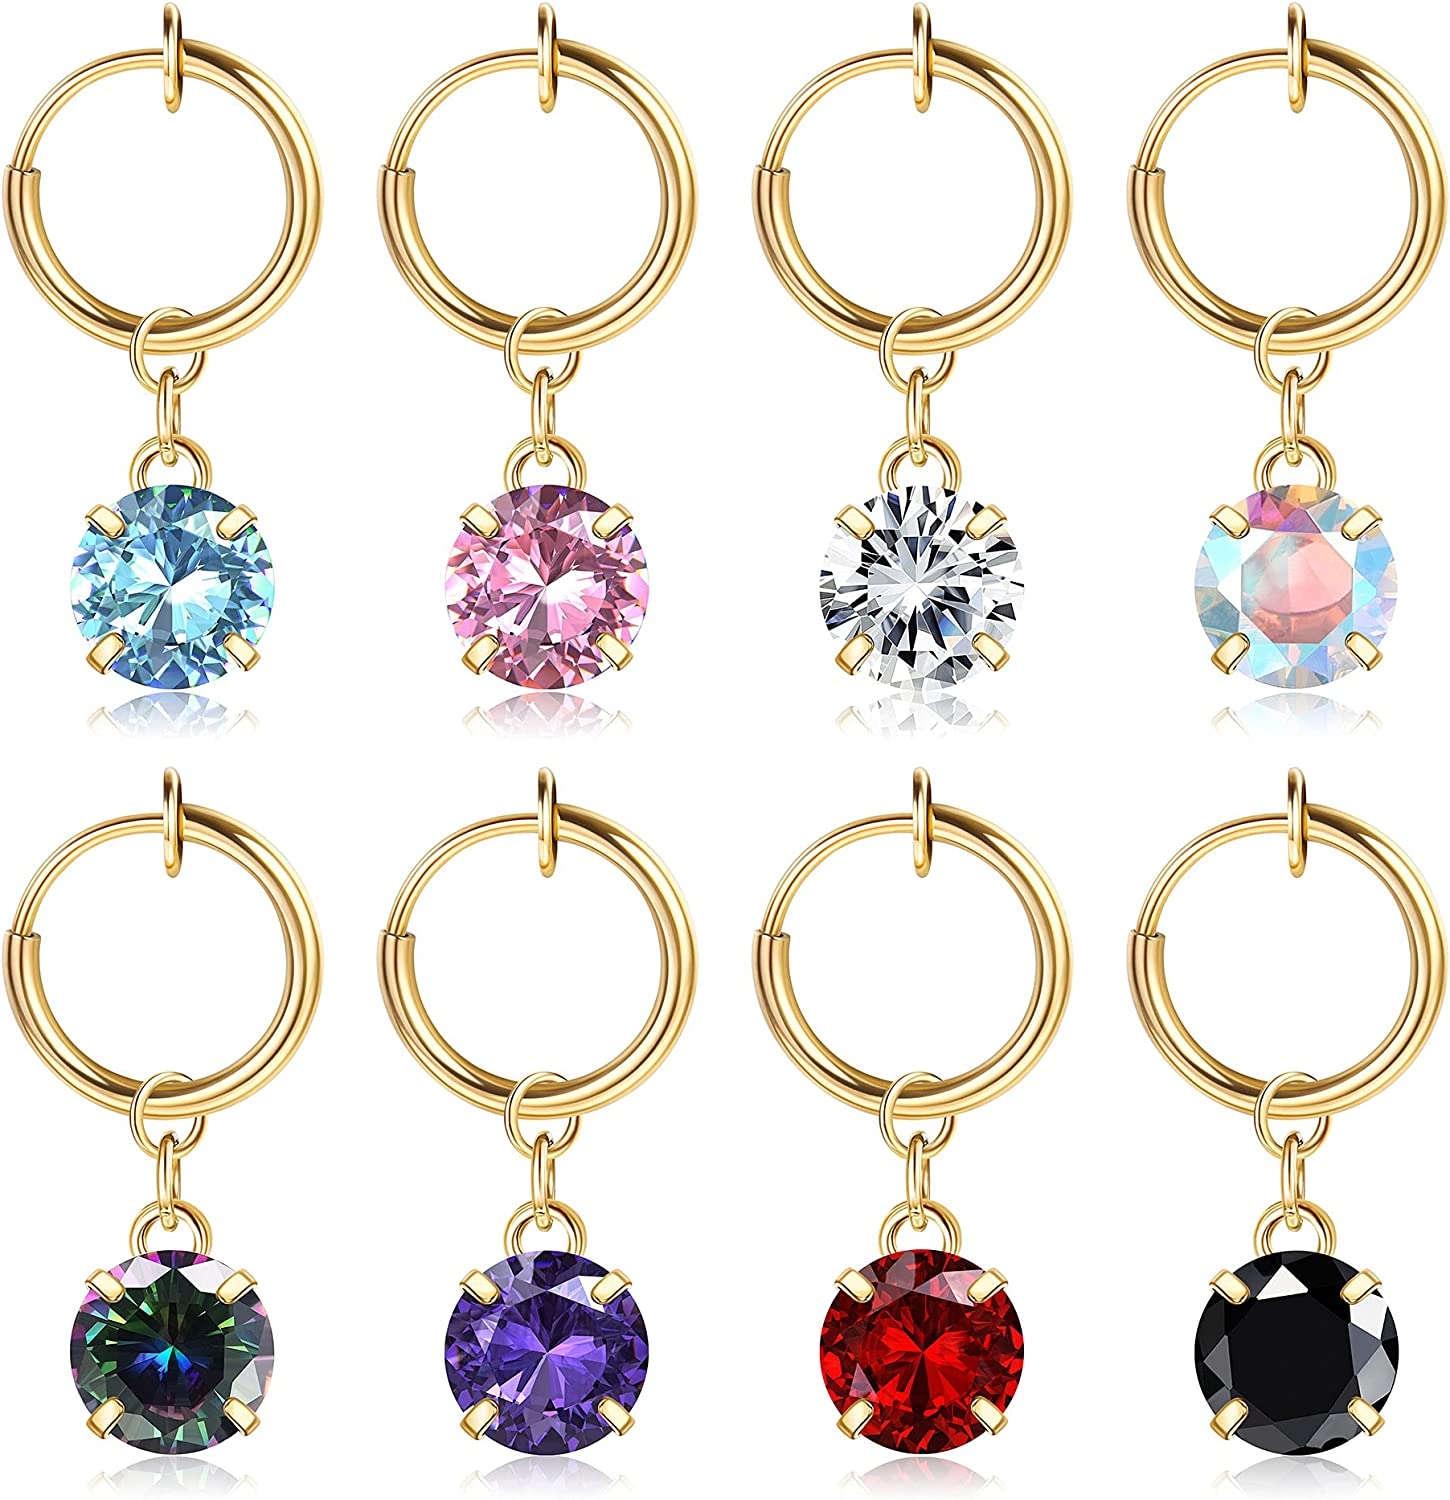 FIBO STEEL 8Pcs Fake Belly Rings Clip on Belly Button Rings Surgical Steel Non Piercing Dangle Navel Rings Fake Belly Piercing Jewelry